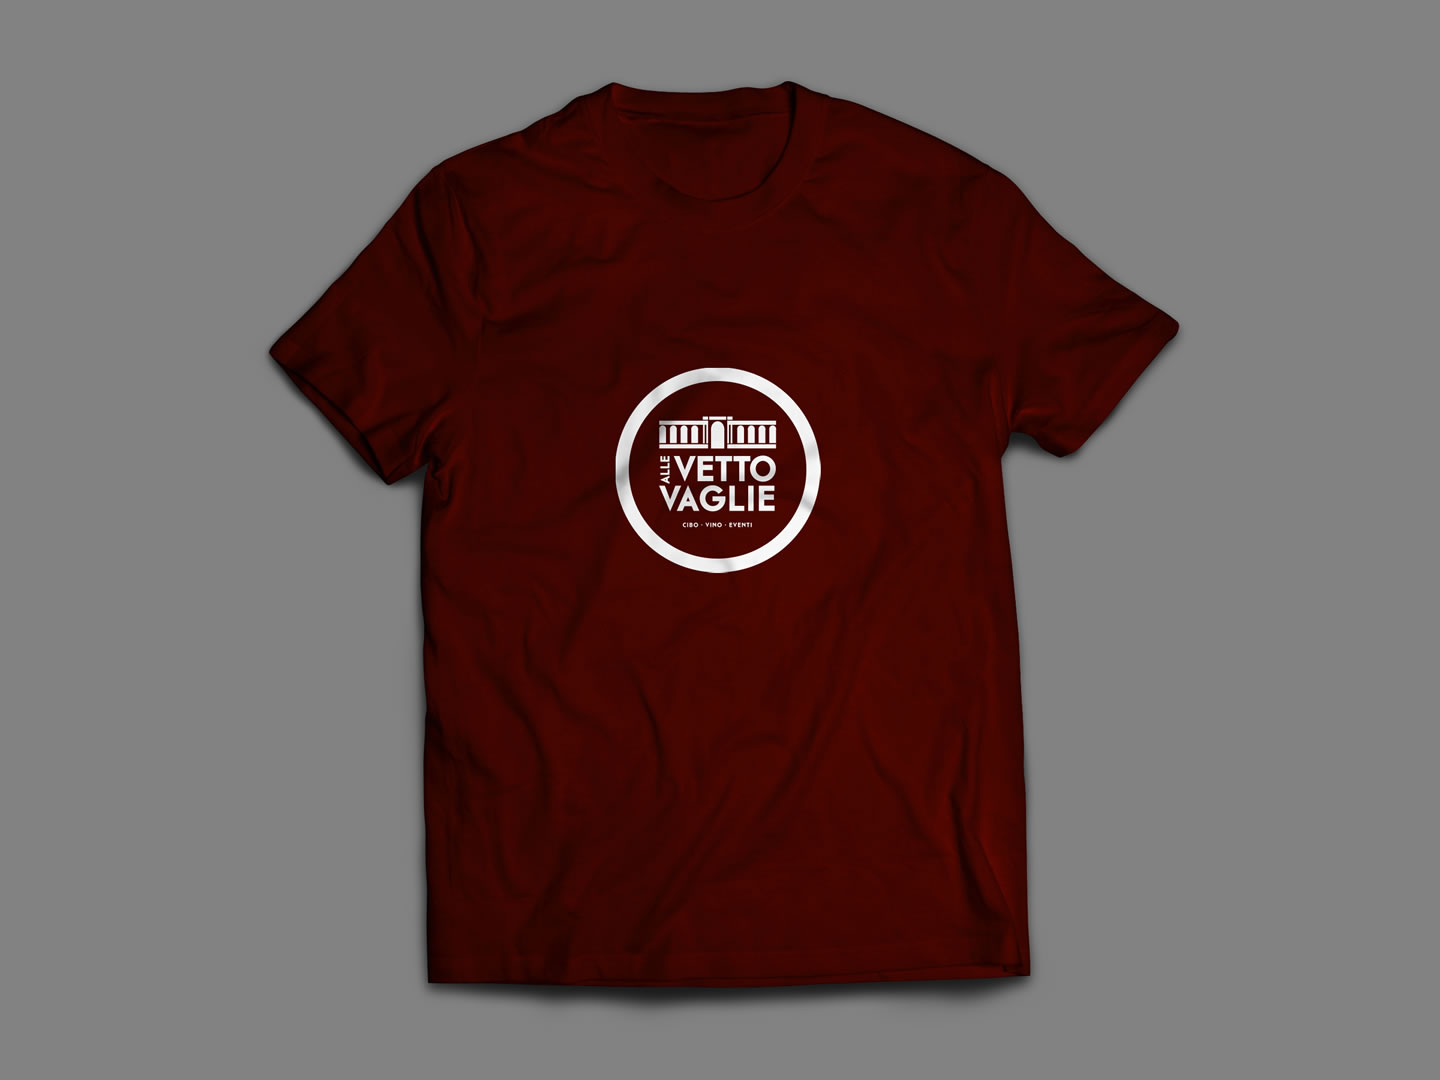 Alle Vettovaglie Street Food t shirt4